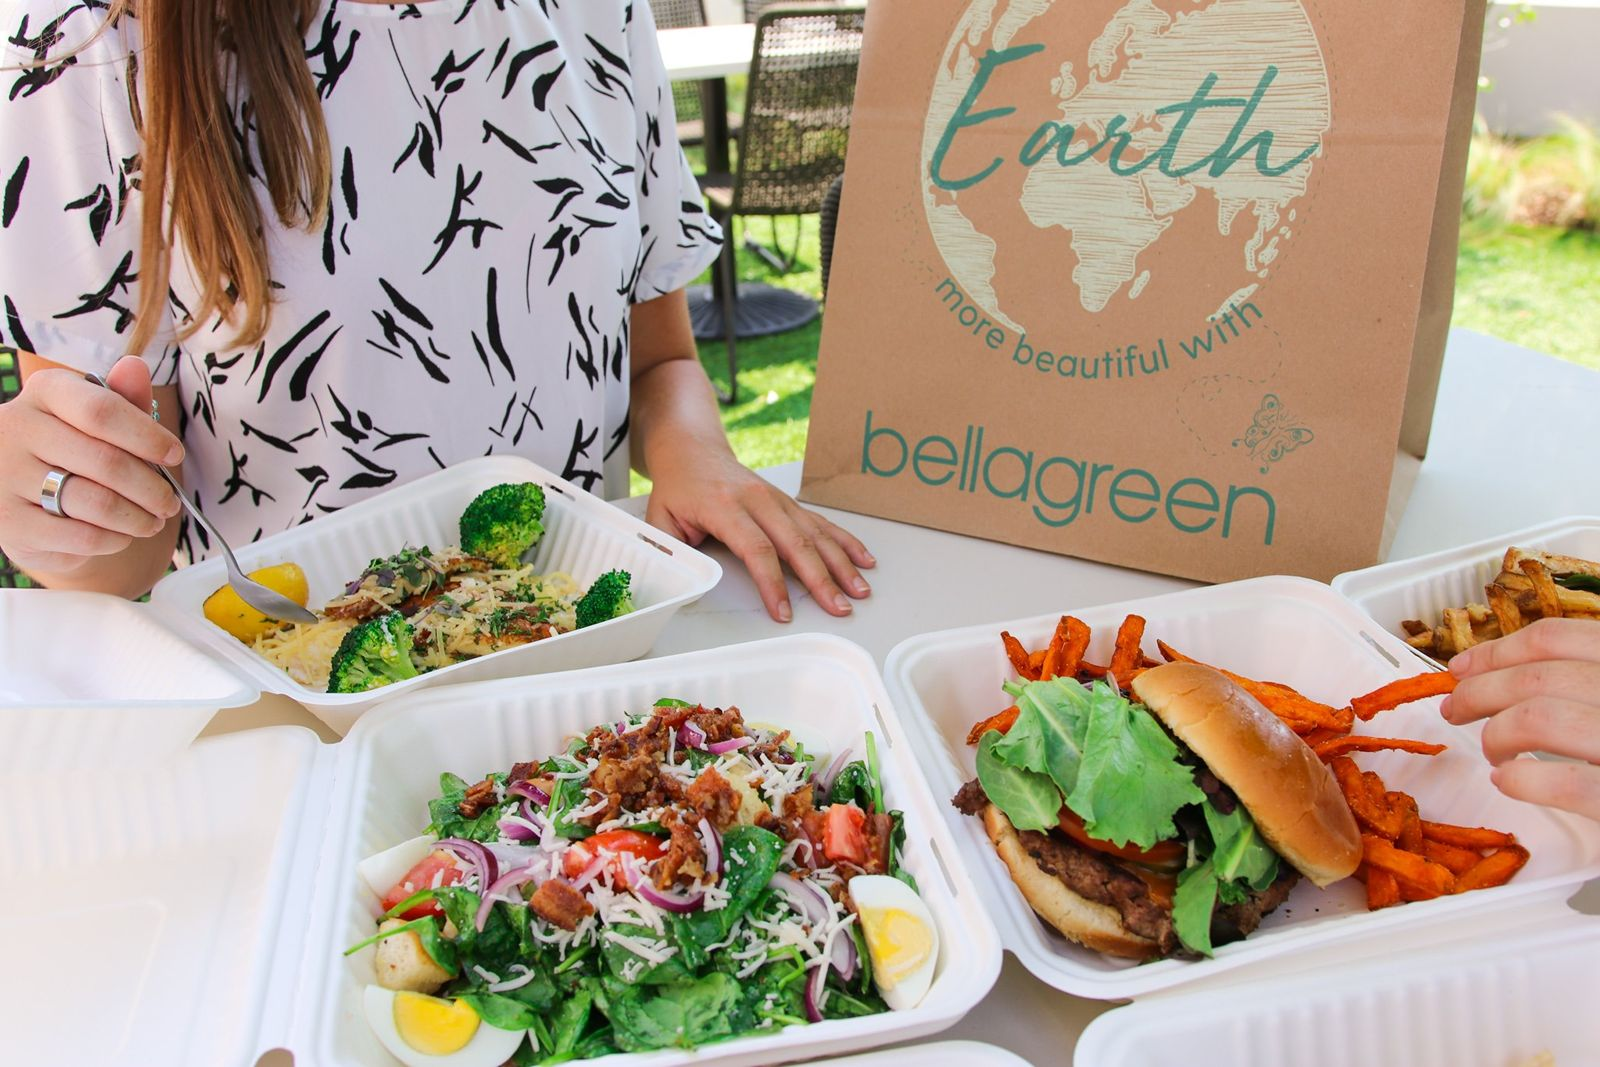 bellagreen is Making Houston More Beautiful with its Sixth Area Location